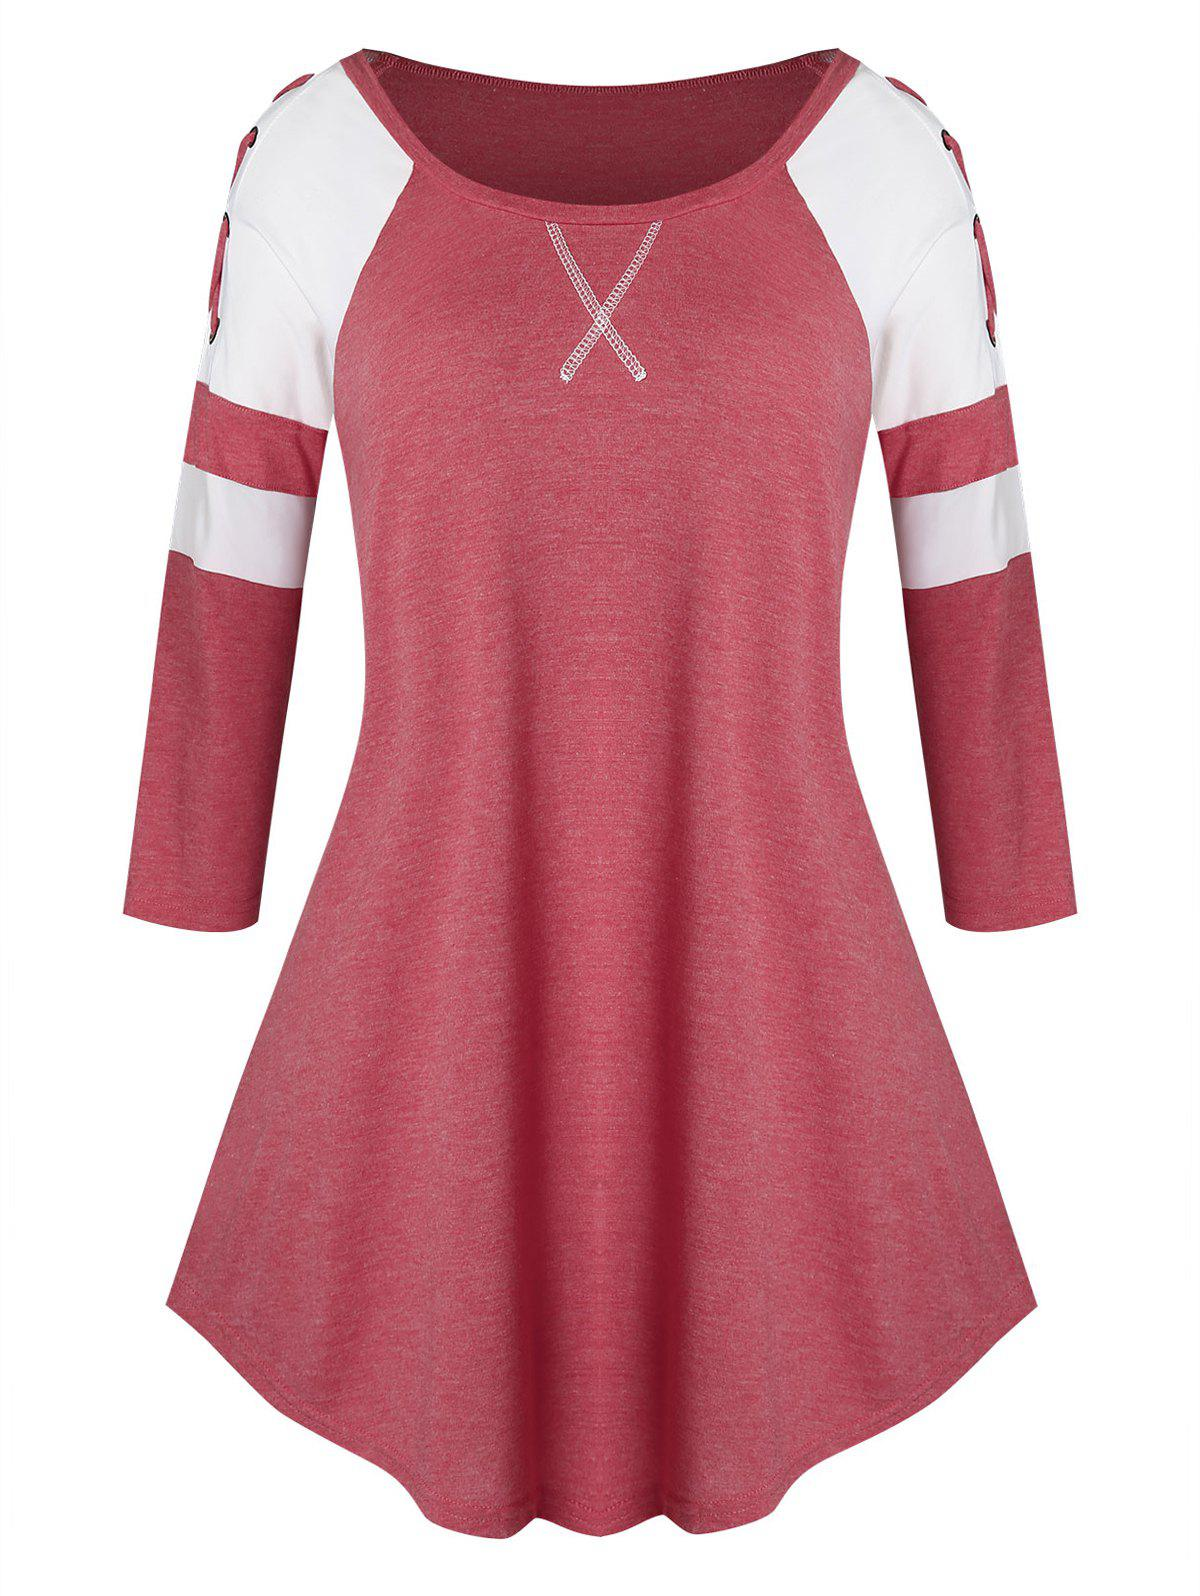 Shop Plus Size Lace Up Two Tone Curved Tunic Tee